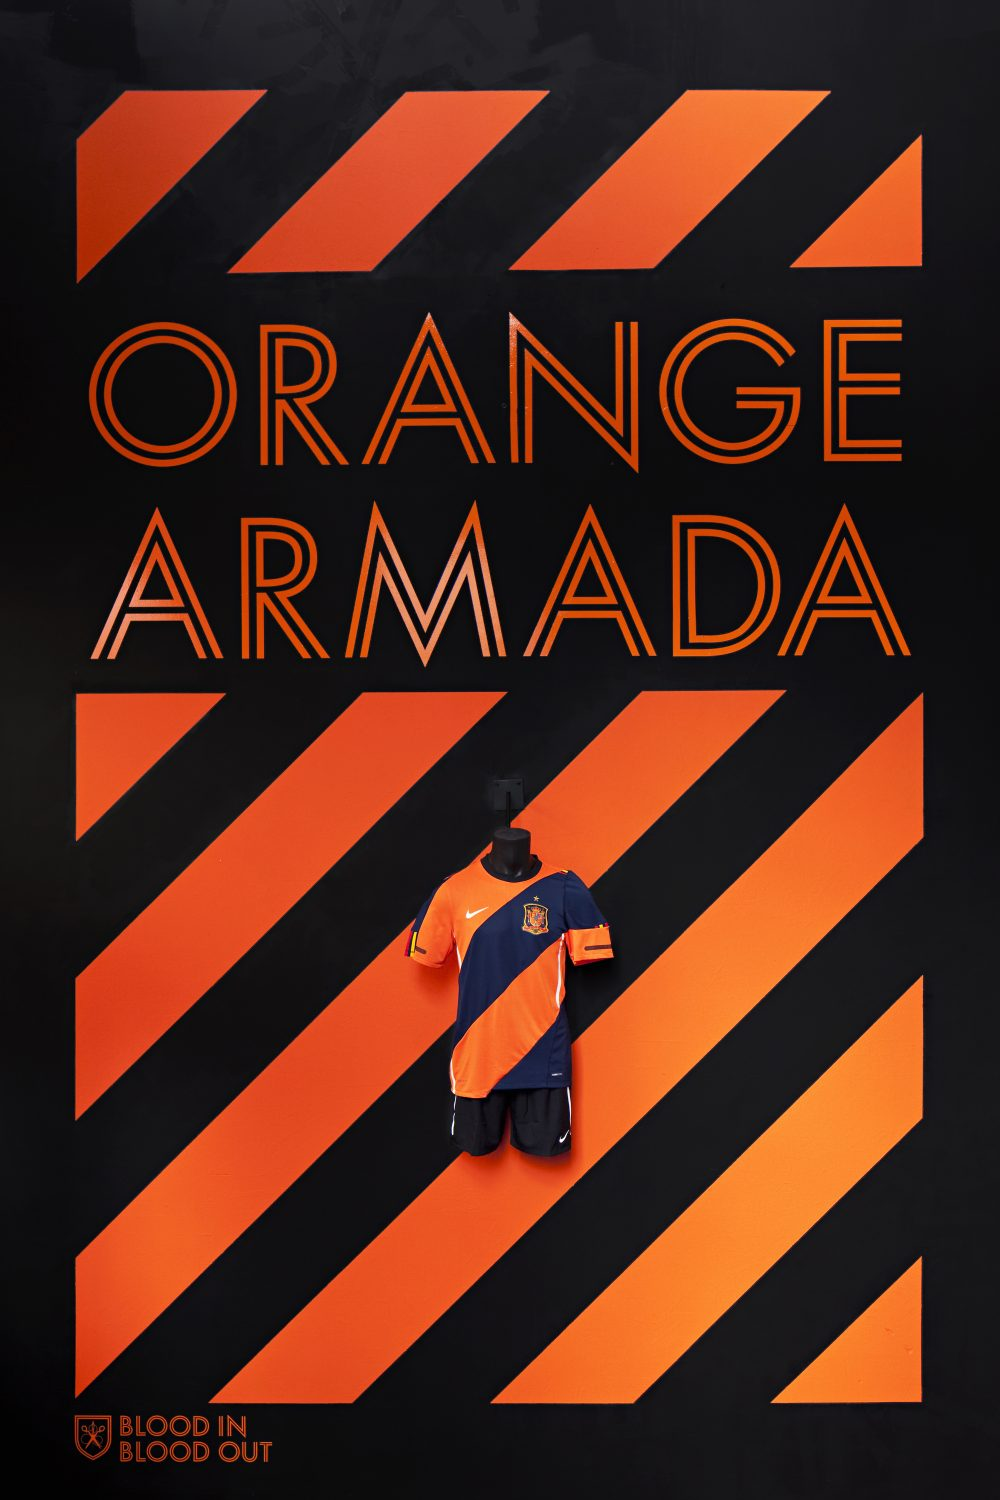 Orange Armada - Blood In Blood Out